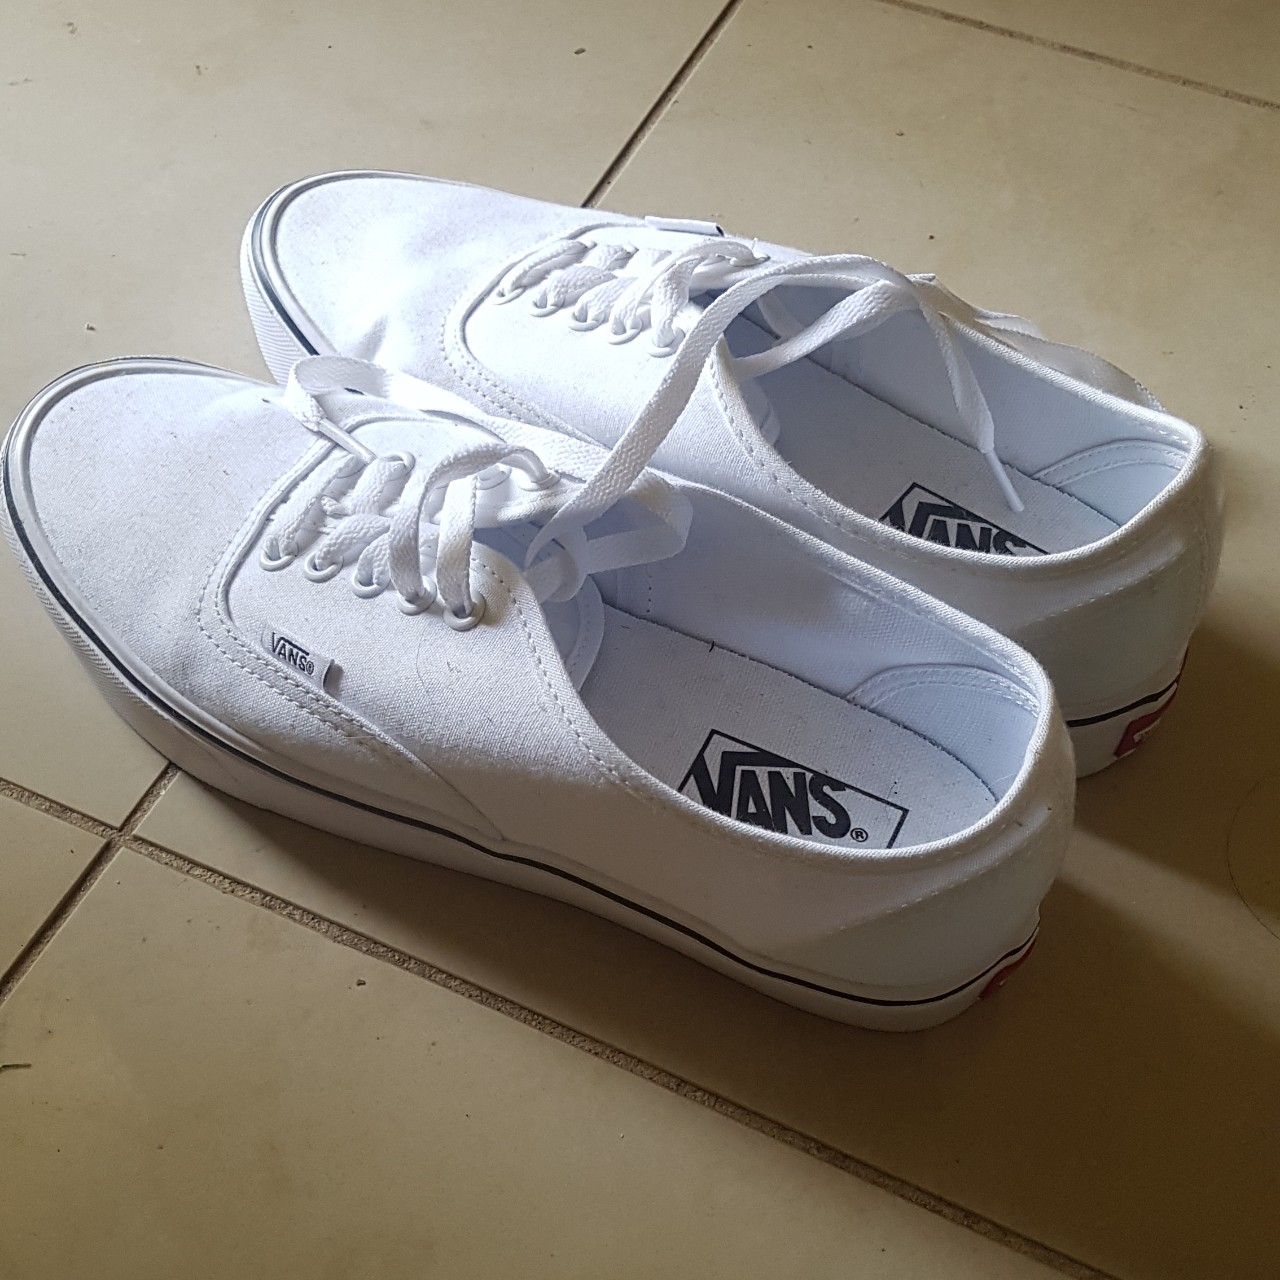 Vans white low top shoes with ultracush